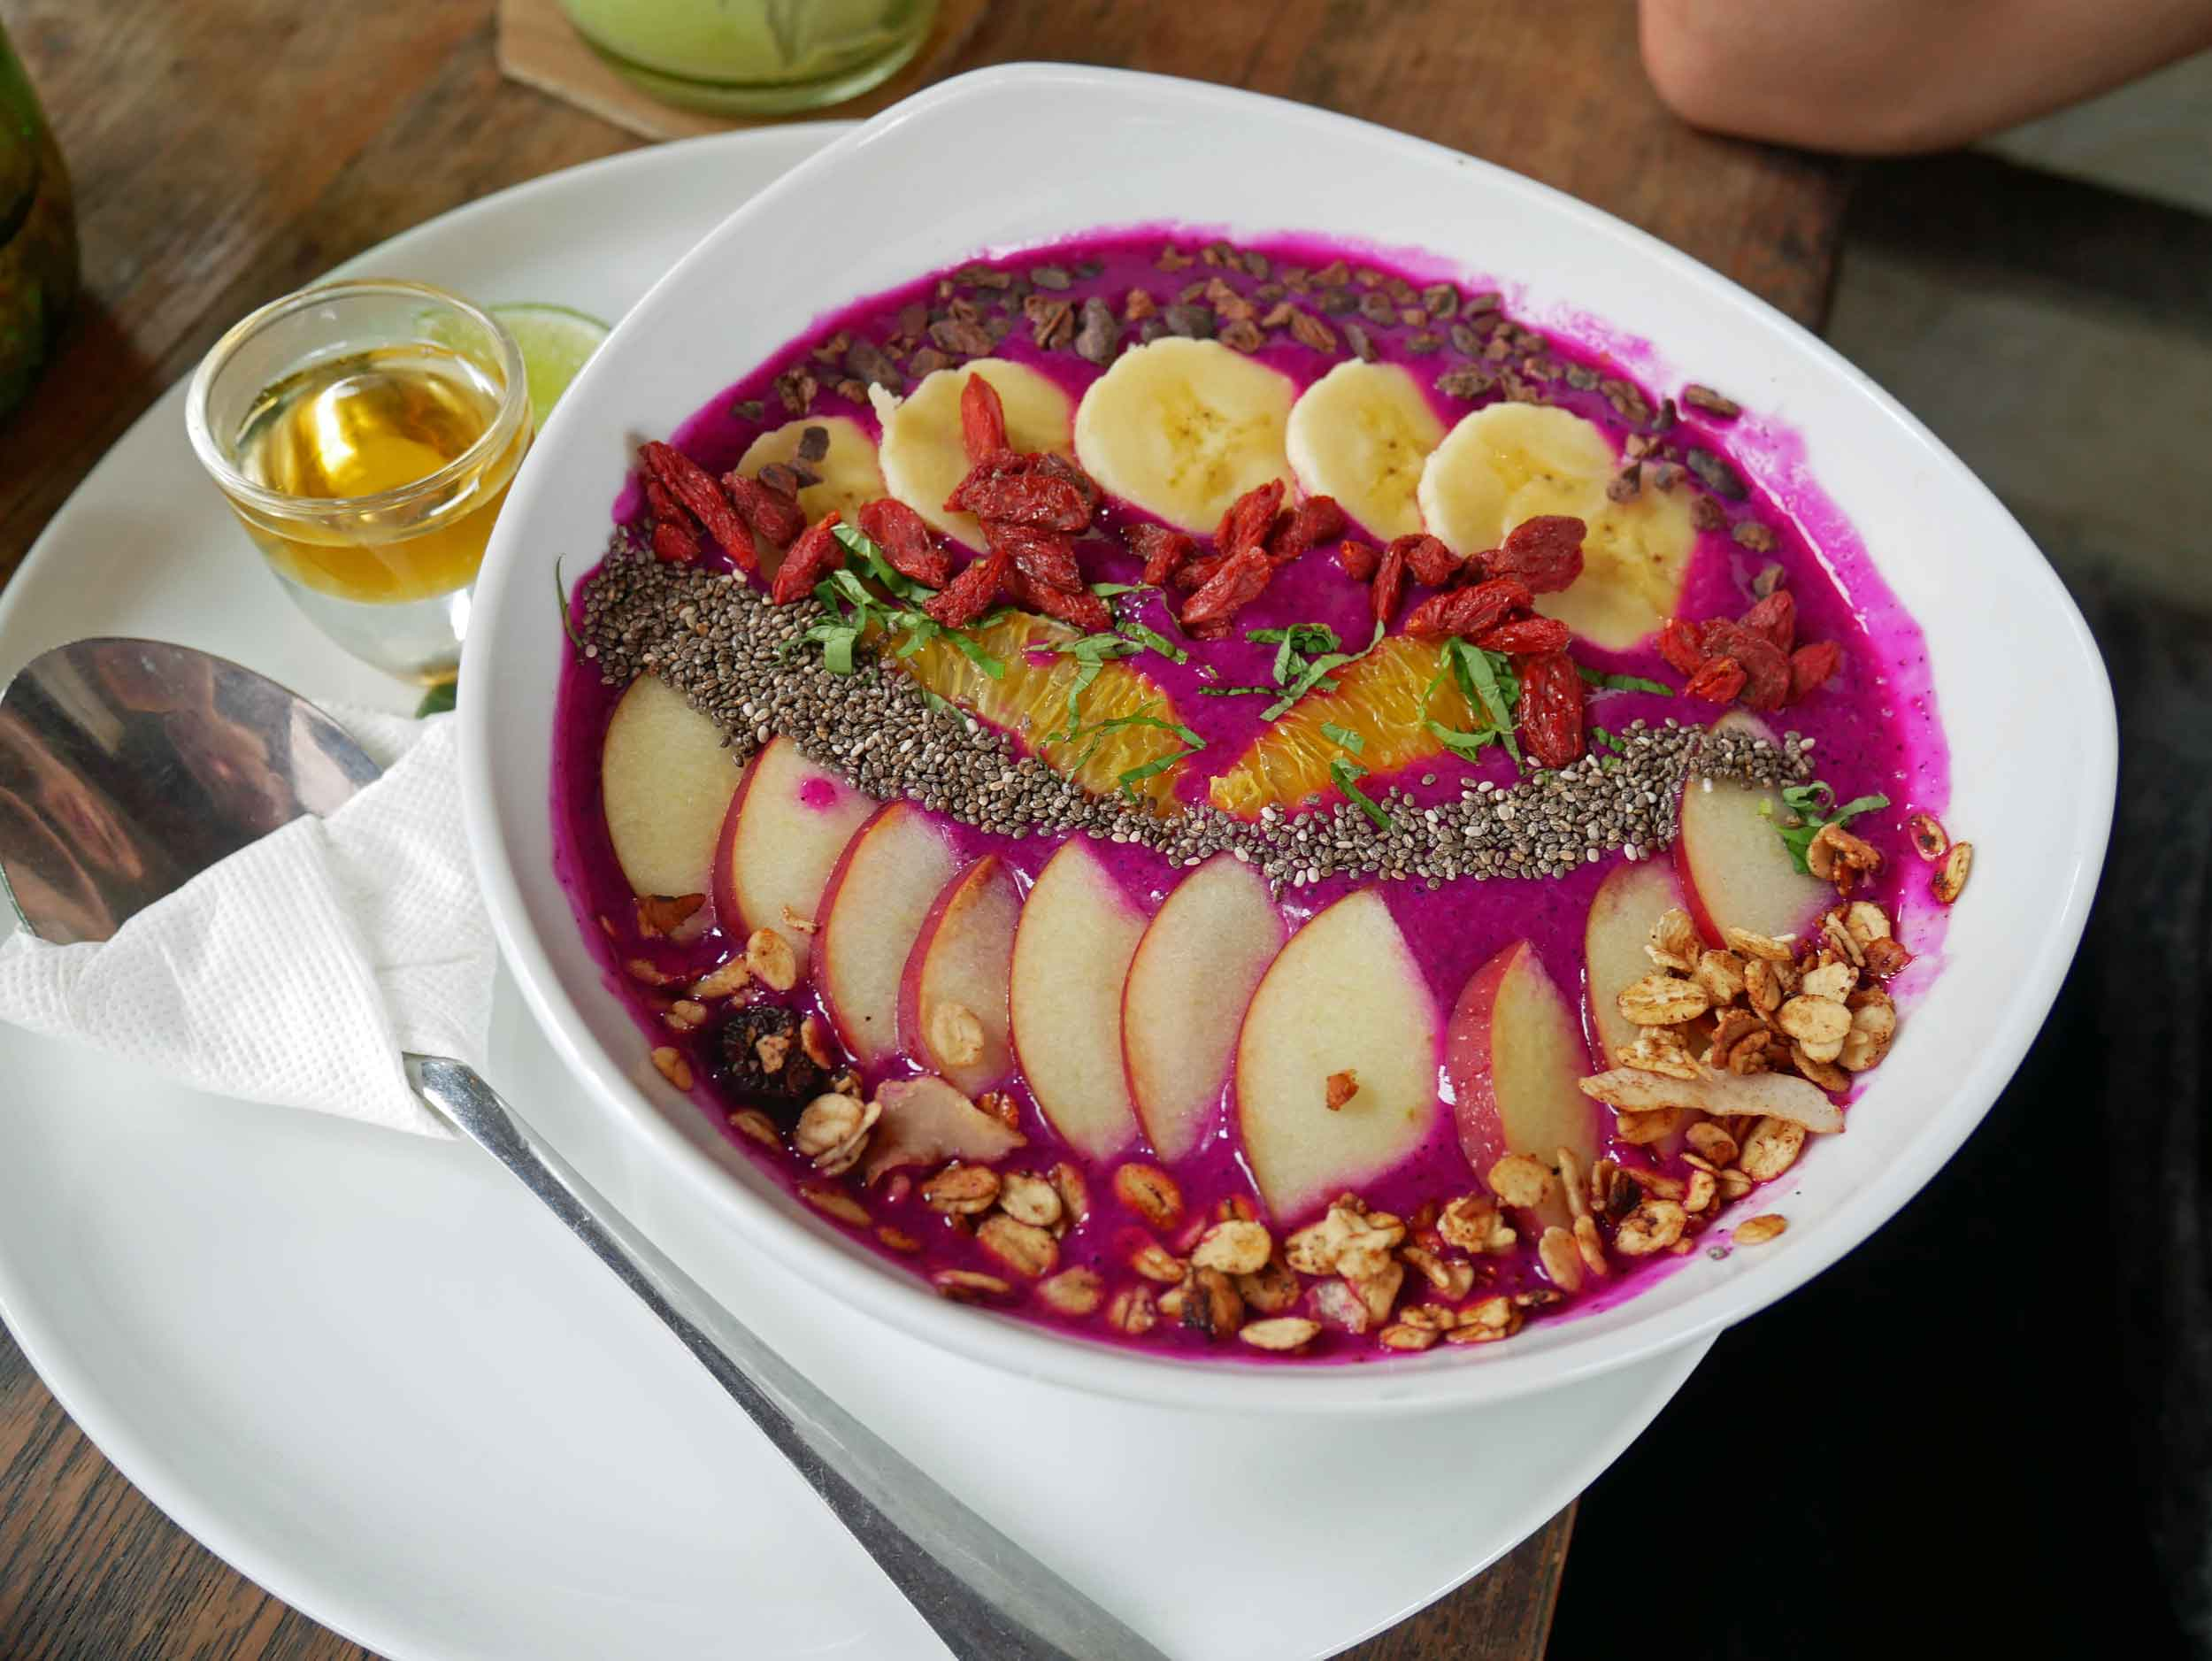 But also plenty of healthy food, like this vibrant dragonfruit smoothie bowl, which quickly became David's favorite snack.